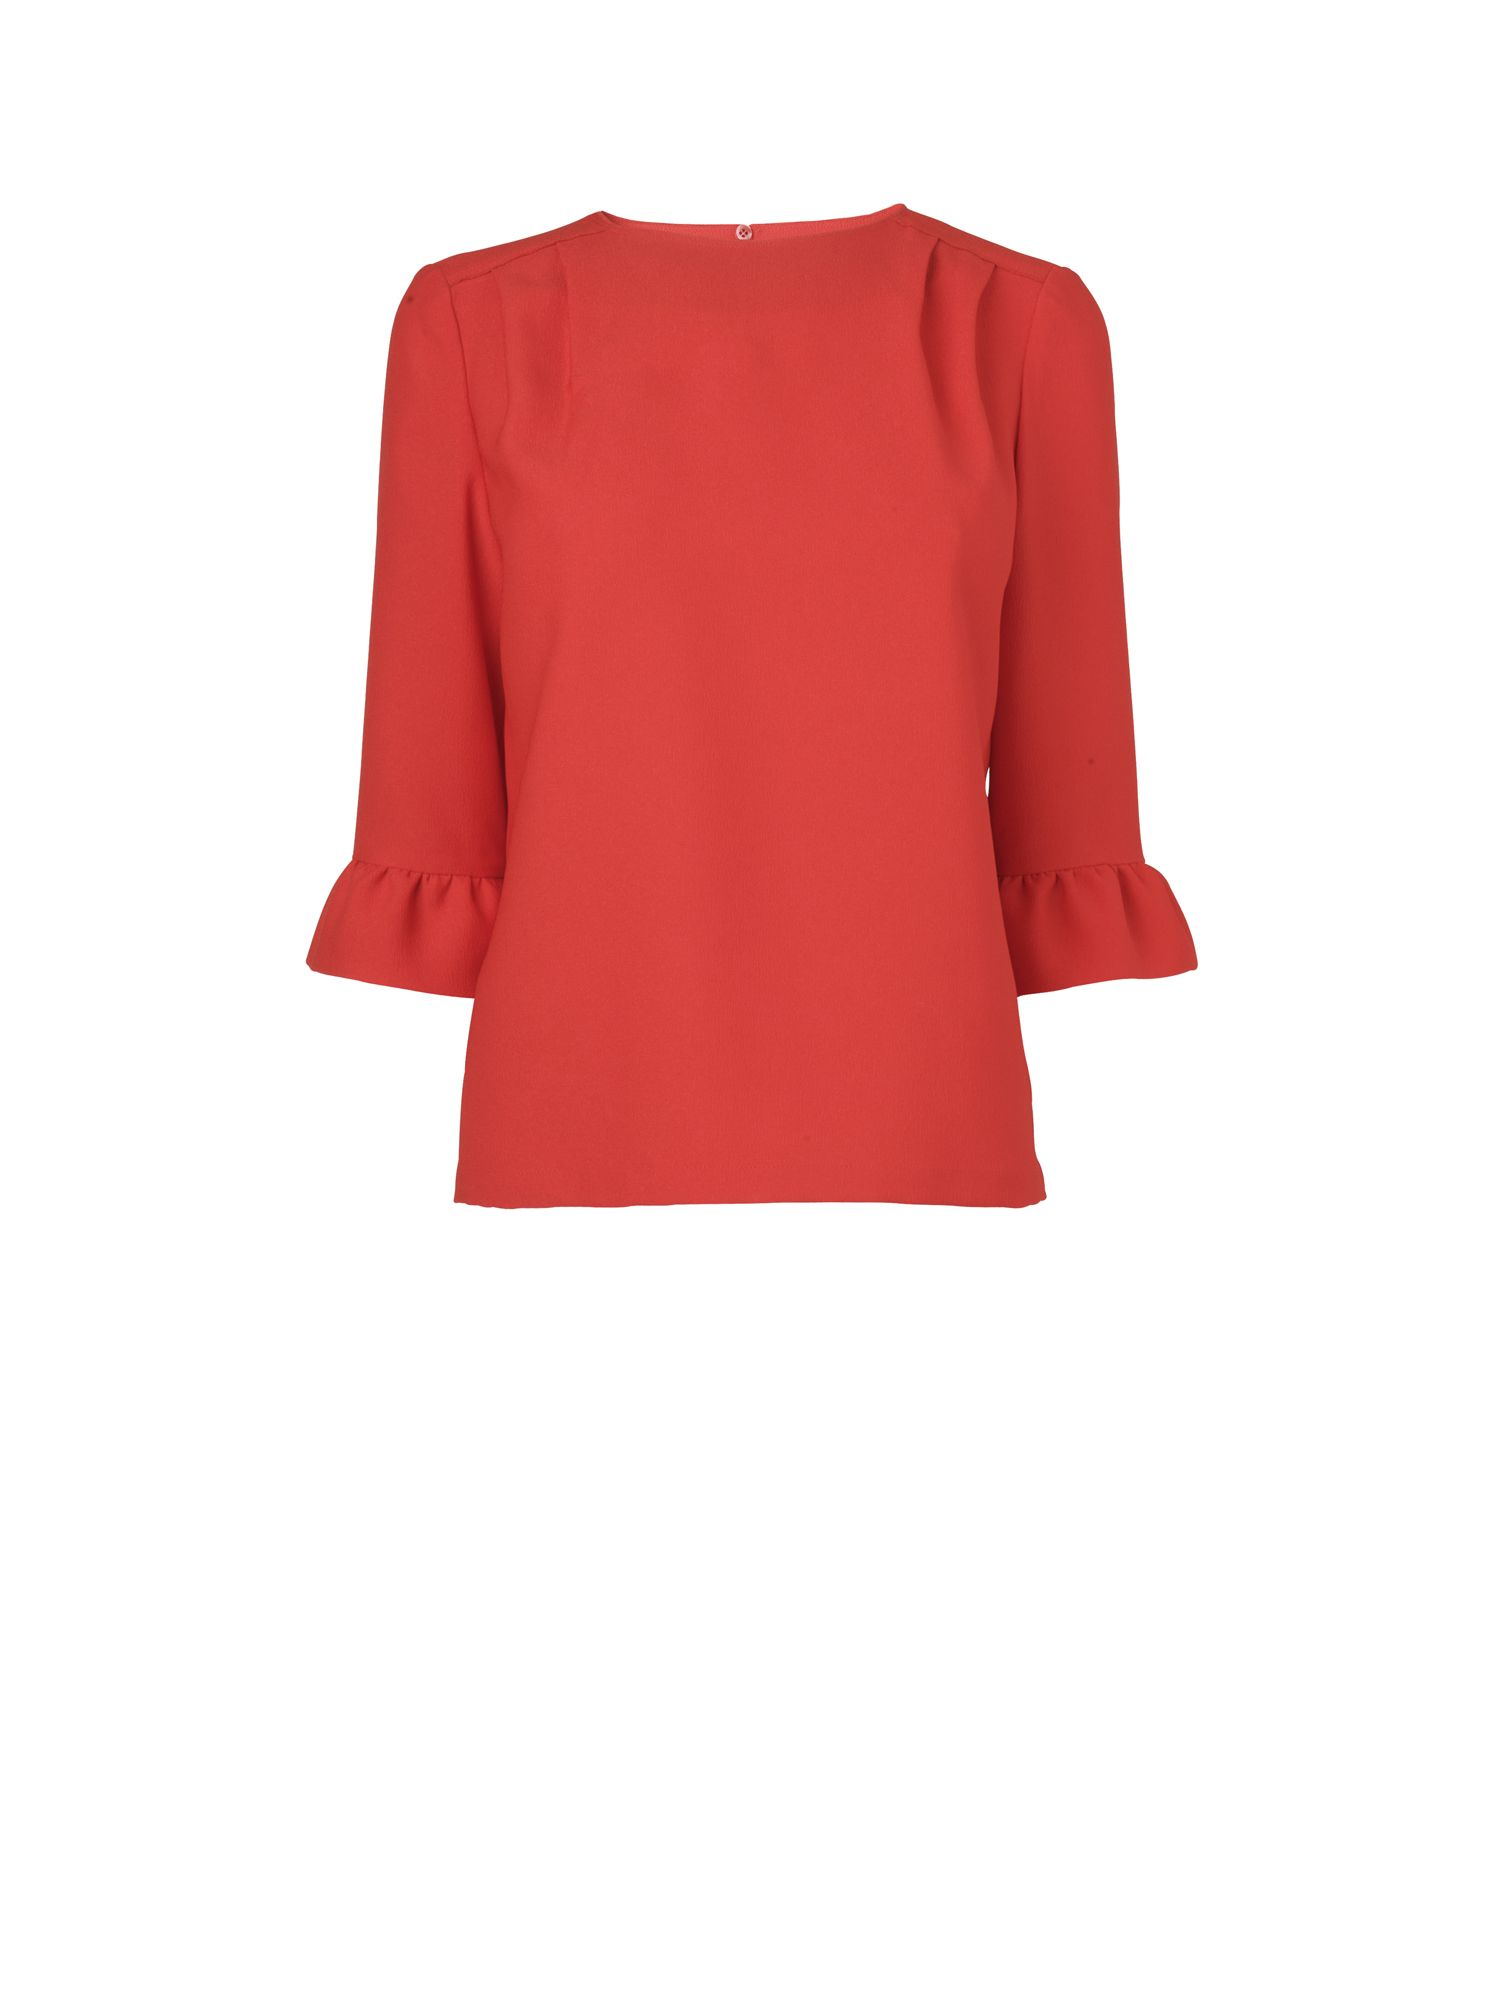 Jaeger Womens Jaeger Bell slv blouse, Red 173536487 product image